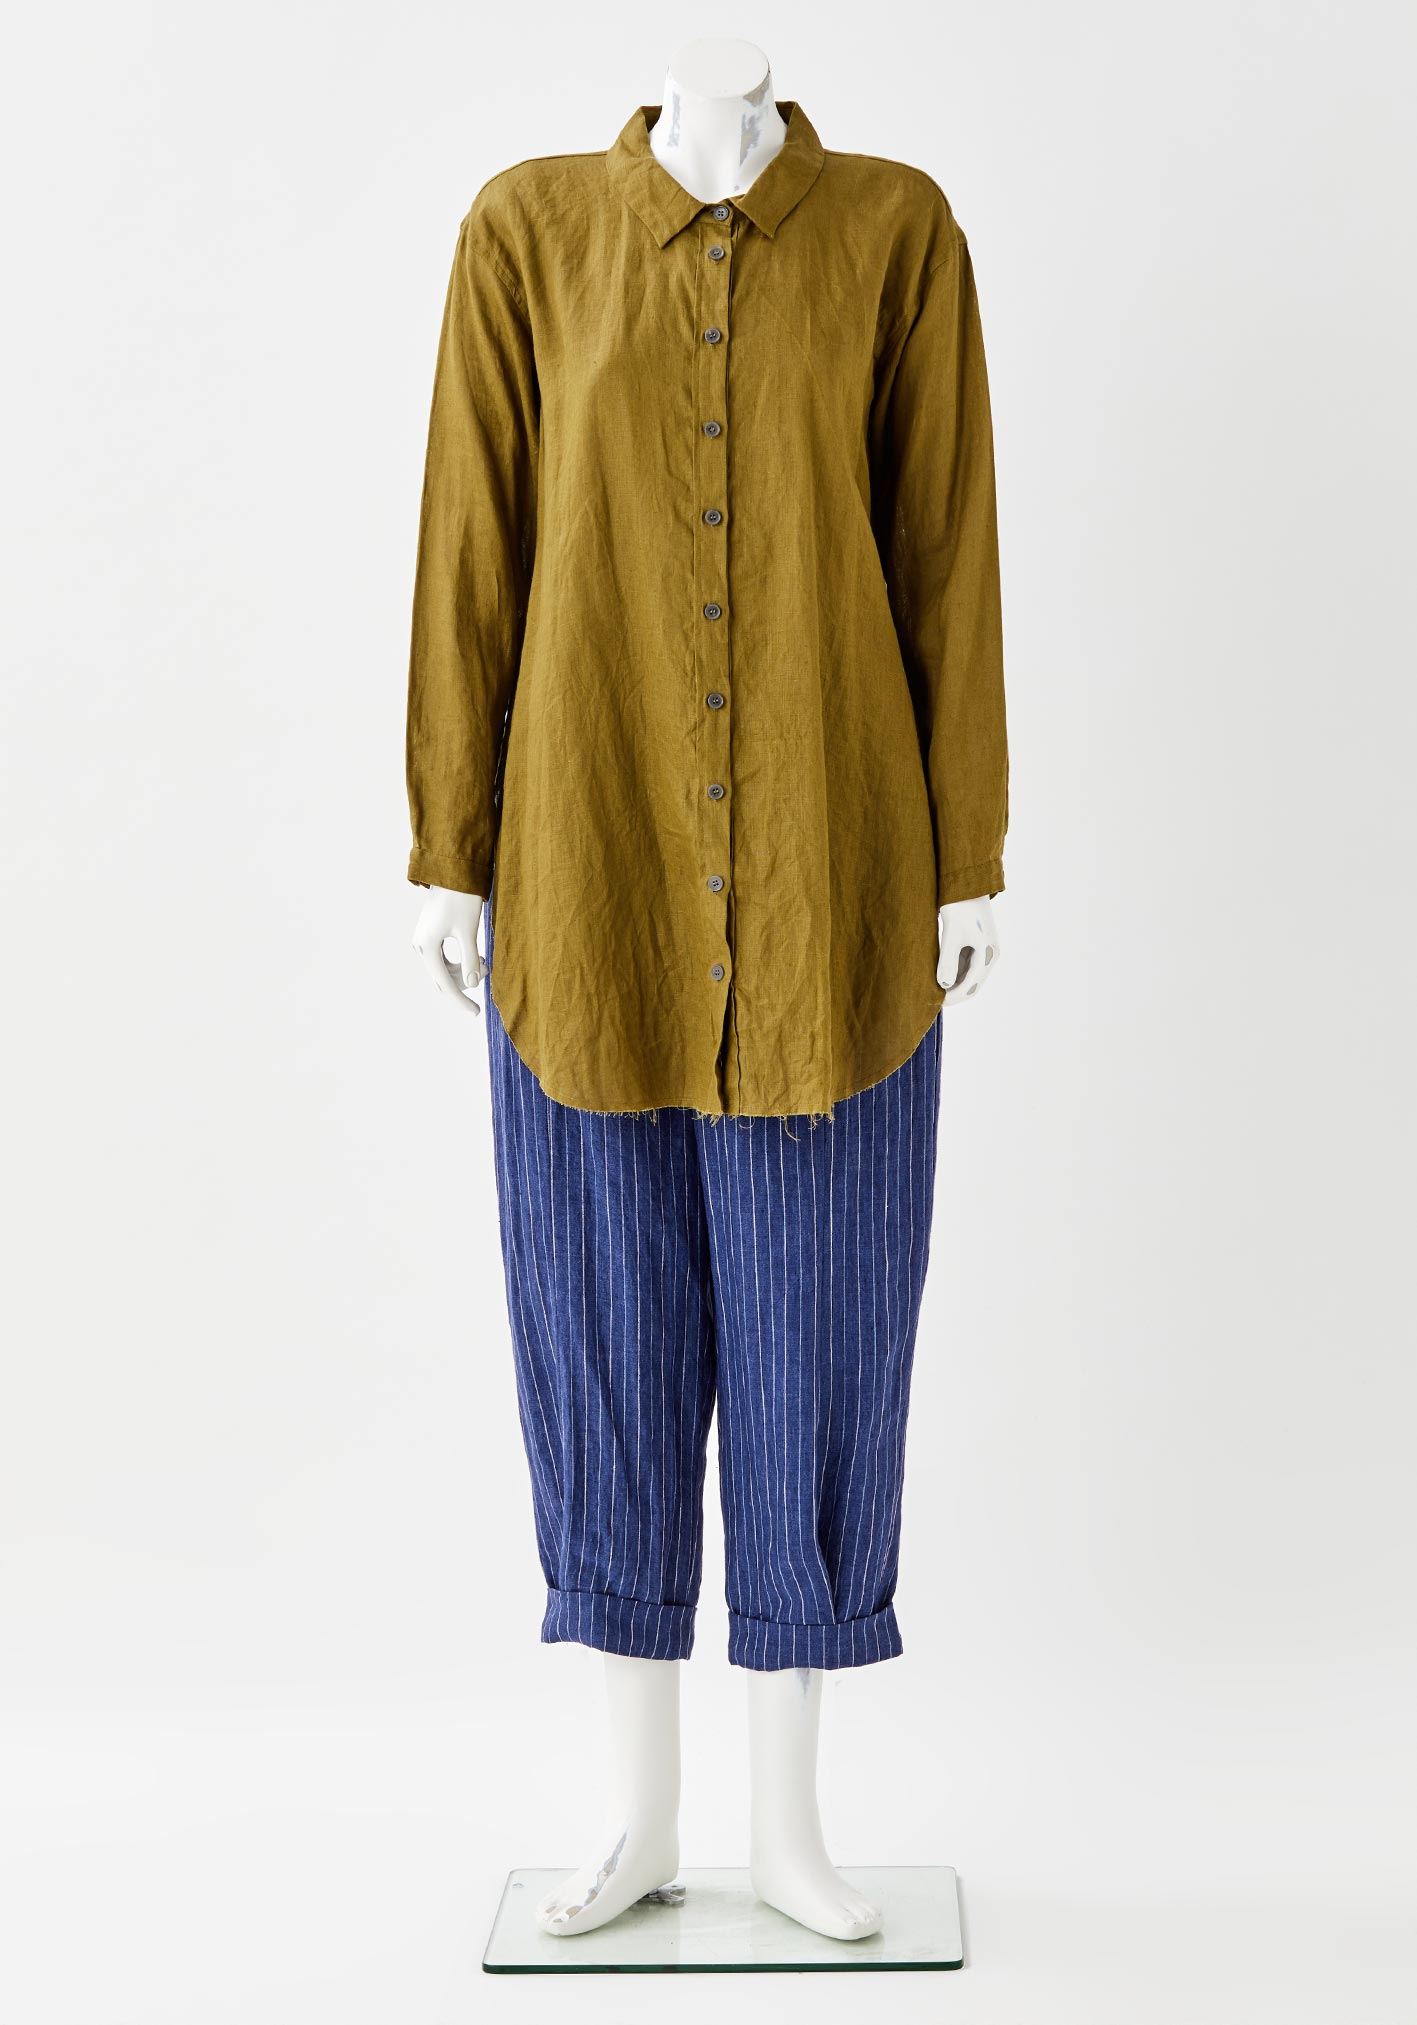 buy the latest Curve Raw Edge Long Drawcord Shirt Linen online